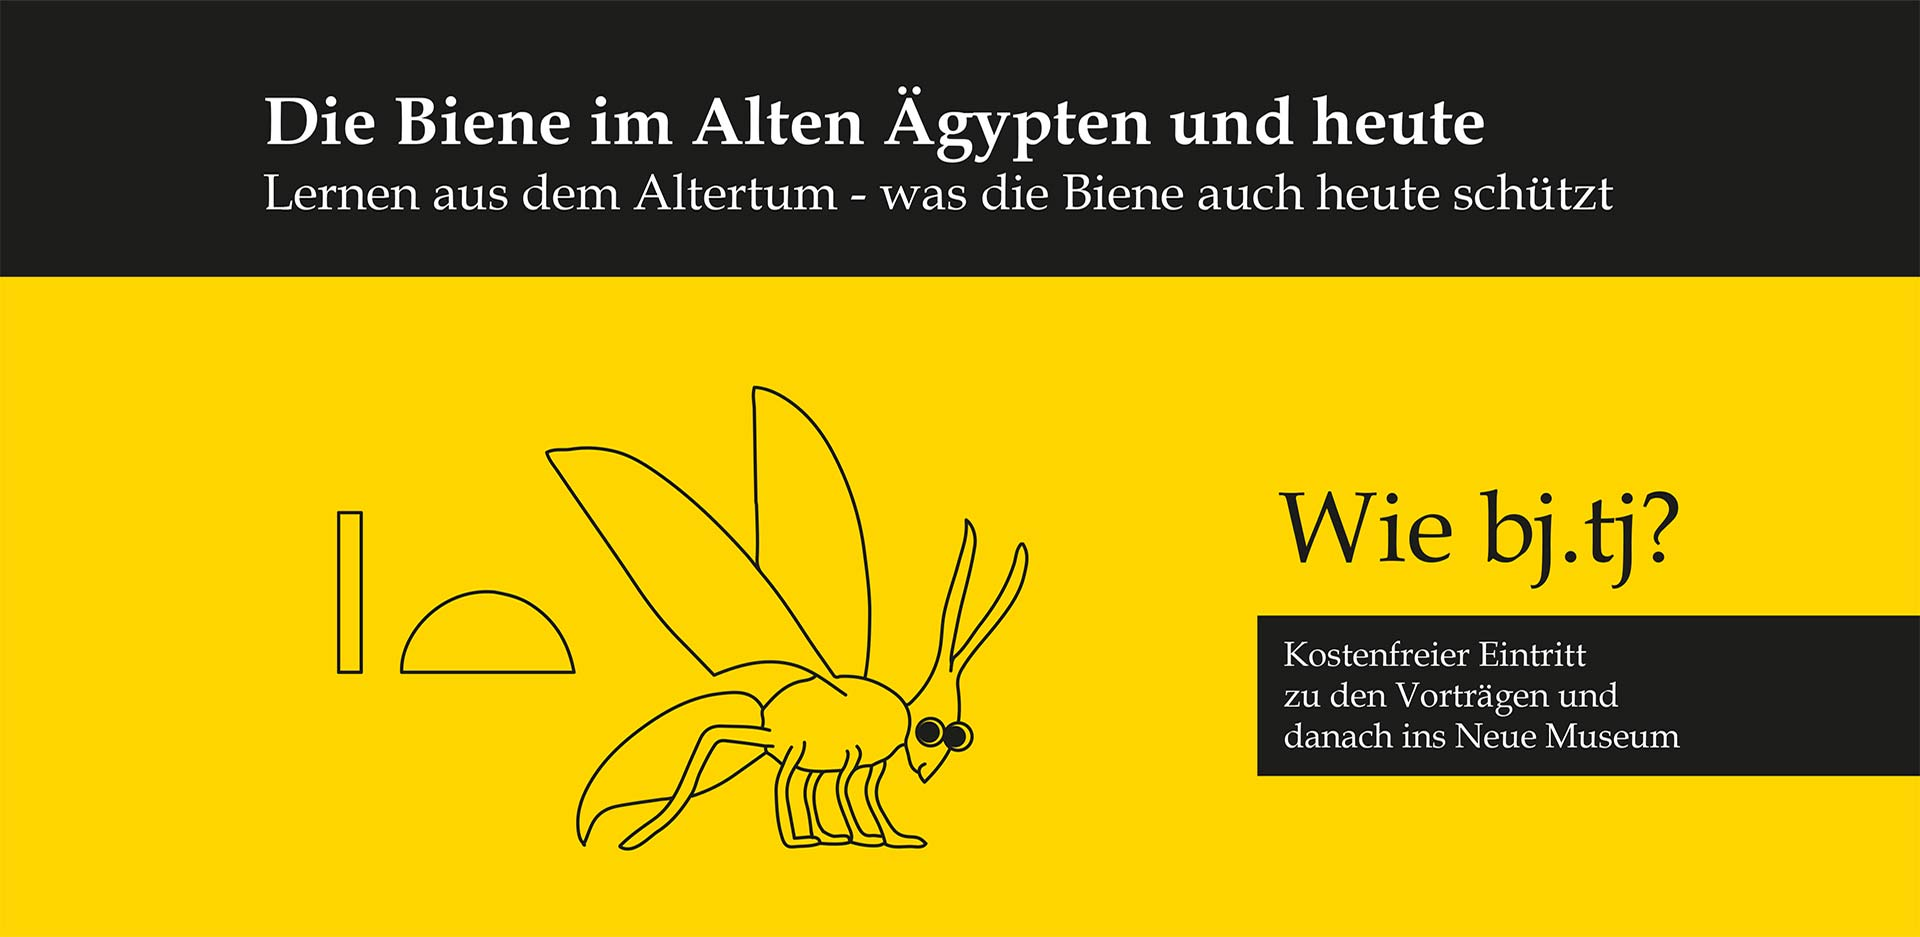 BEE at the Museum: Talks on Bee-Related Topics on 22 August 2019 at the James-Simon-Galerie and the Neues Museum